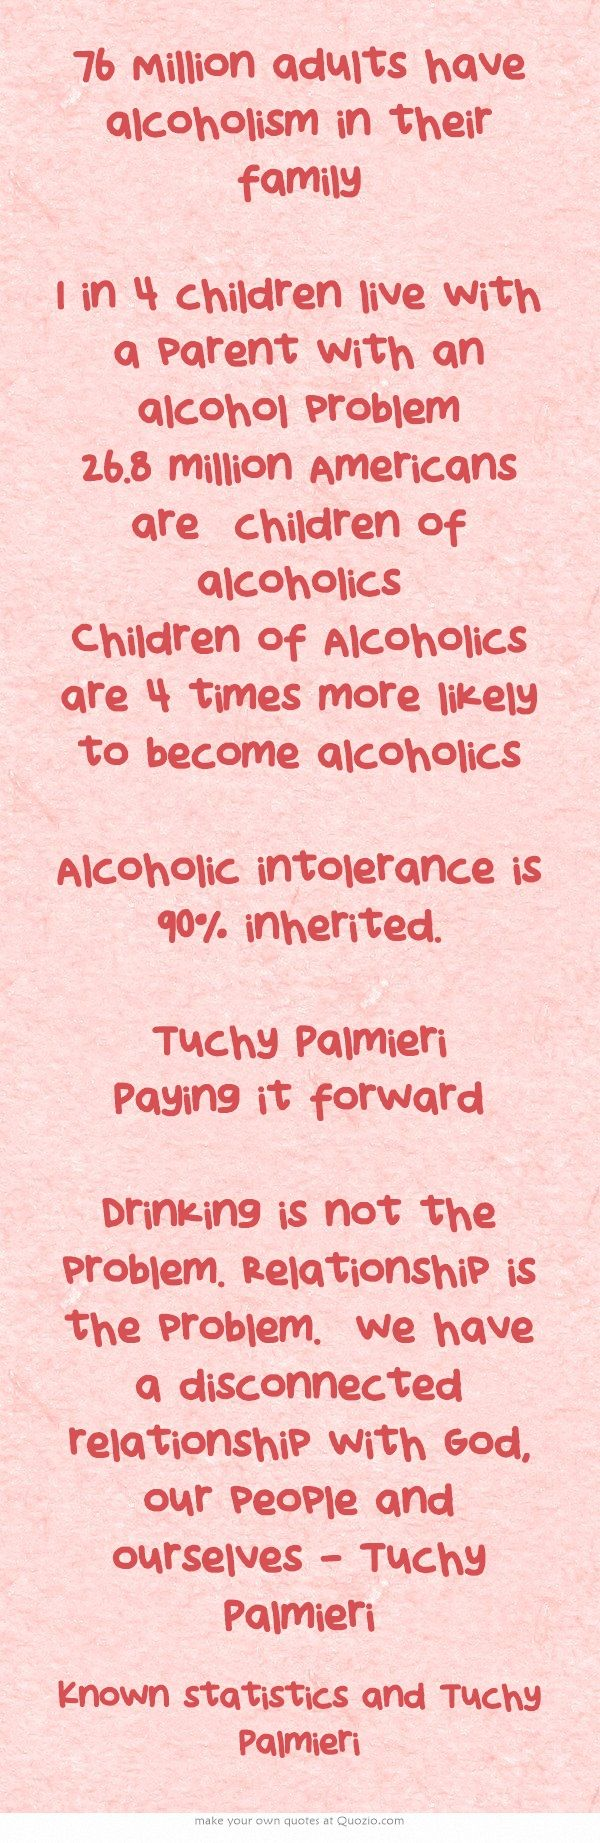 76 Million adults have alcoholism in their family 1 in 4 children live with a parent with an alcohol problem 26.8 million Americans are children of alcoholics Children of Alcoholics are 4 times more likely to become alcoholics Alcoholic intolerance is 90% inherited. Tuchy Palmieri Paying it forward  Drinking is not the problem. Relationship is the problem. we have a disconnected relationship with God, our people and ourselves - Tuchy Palmieri